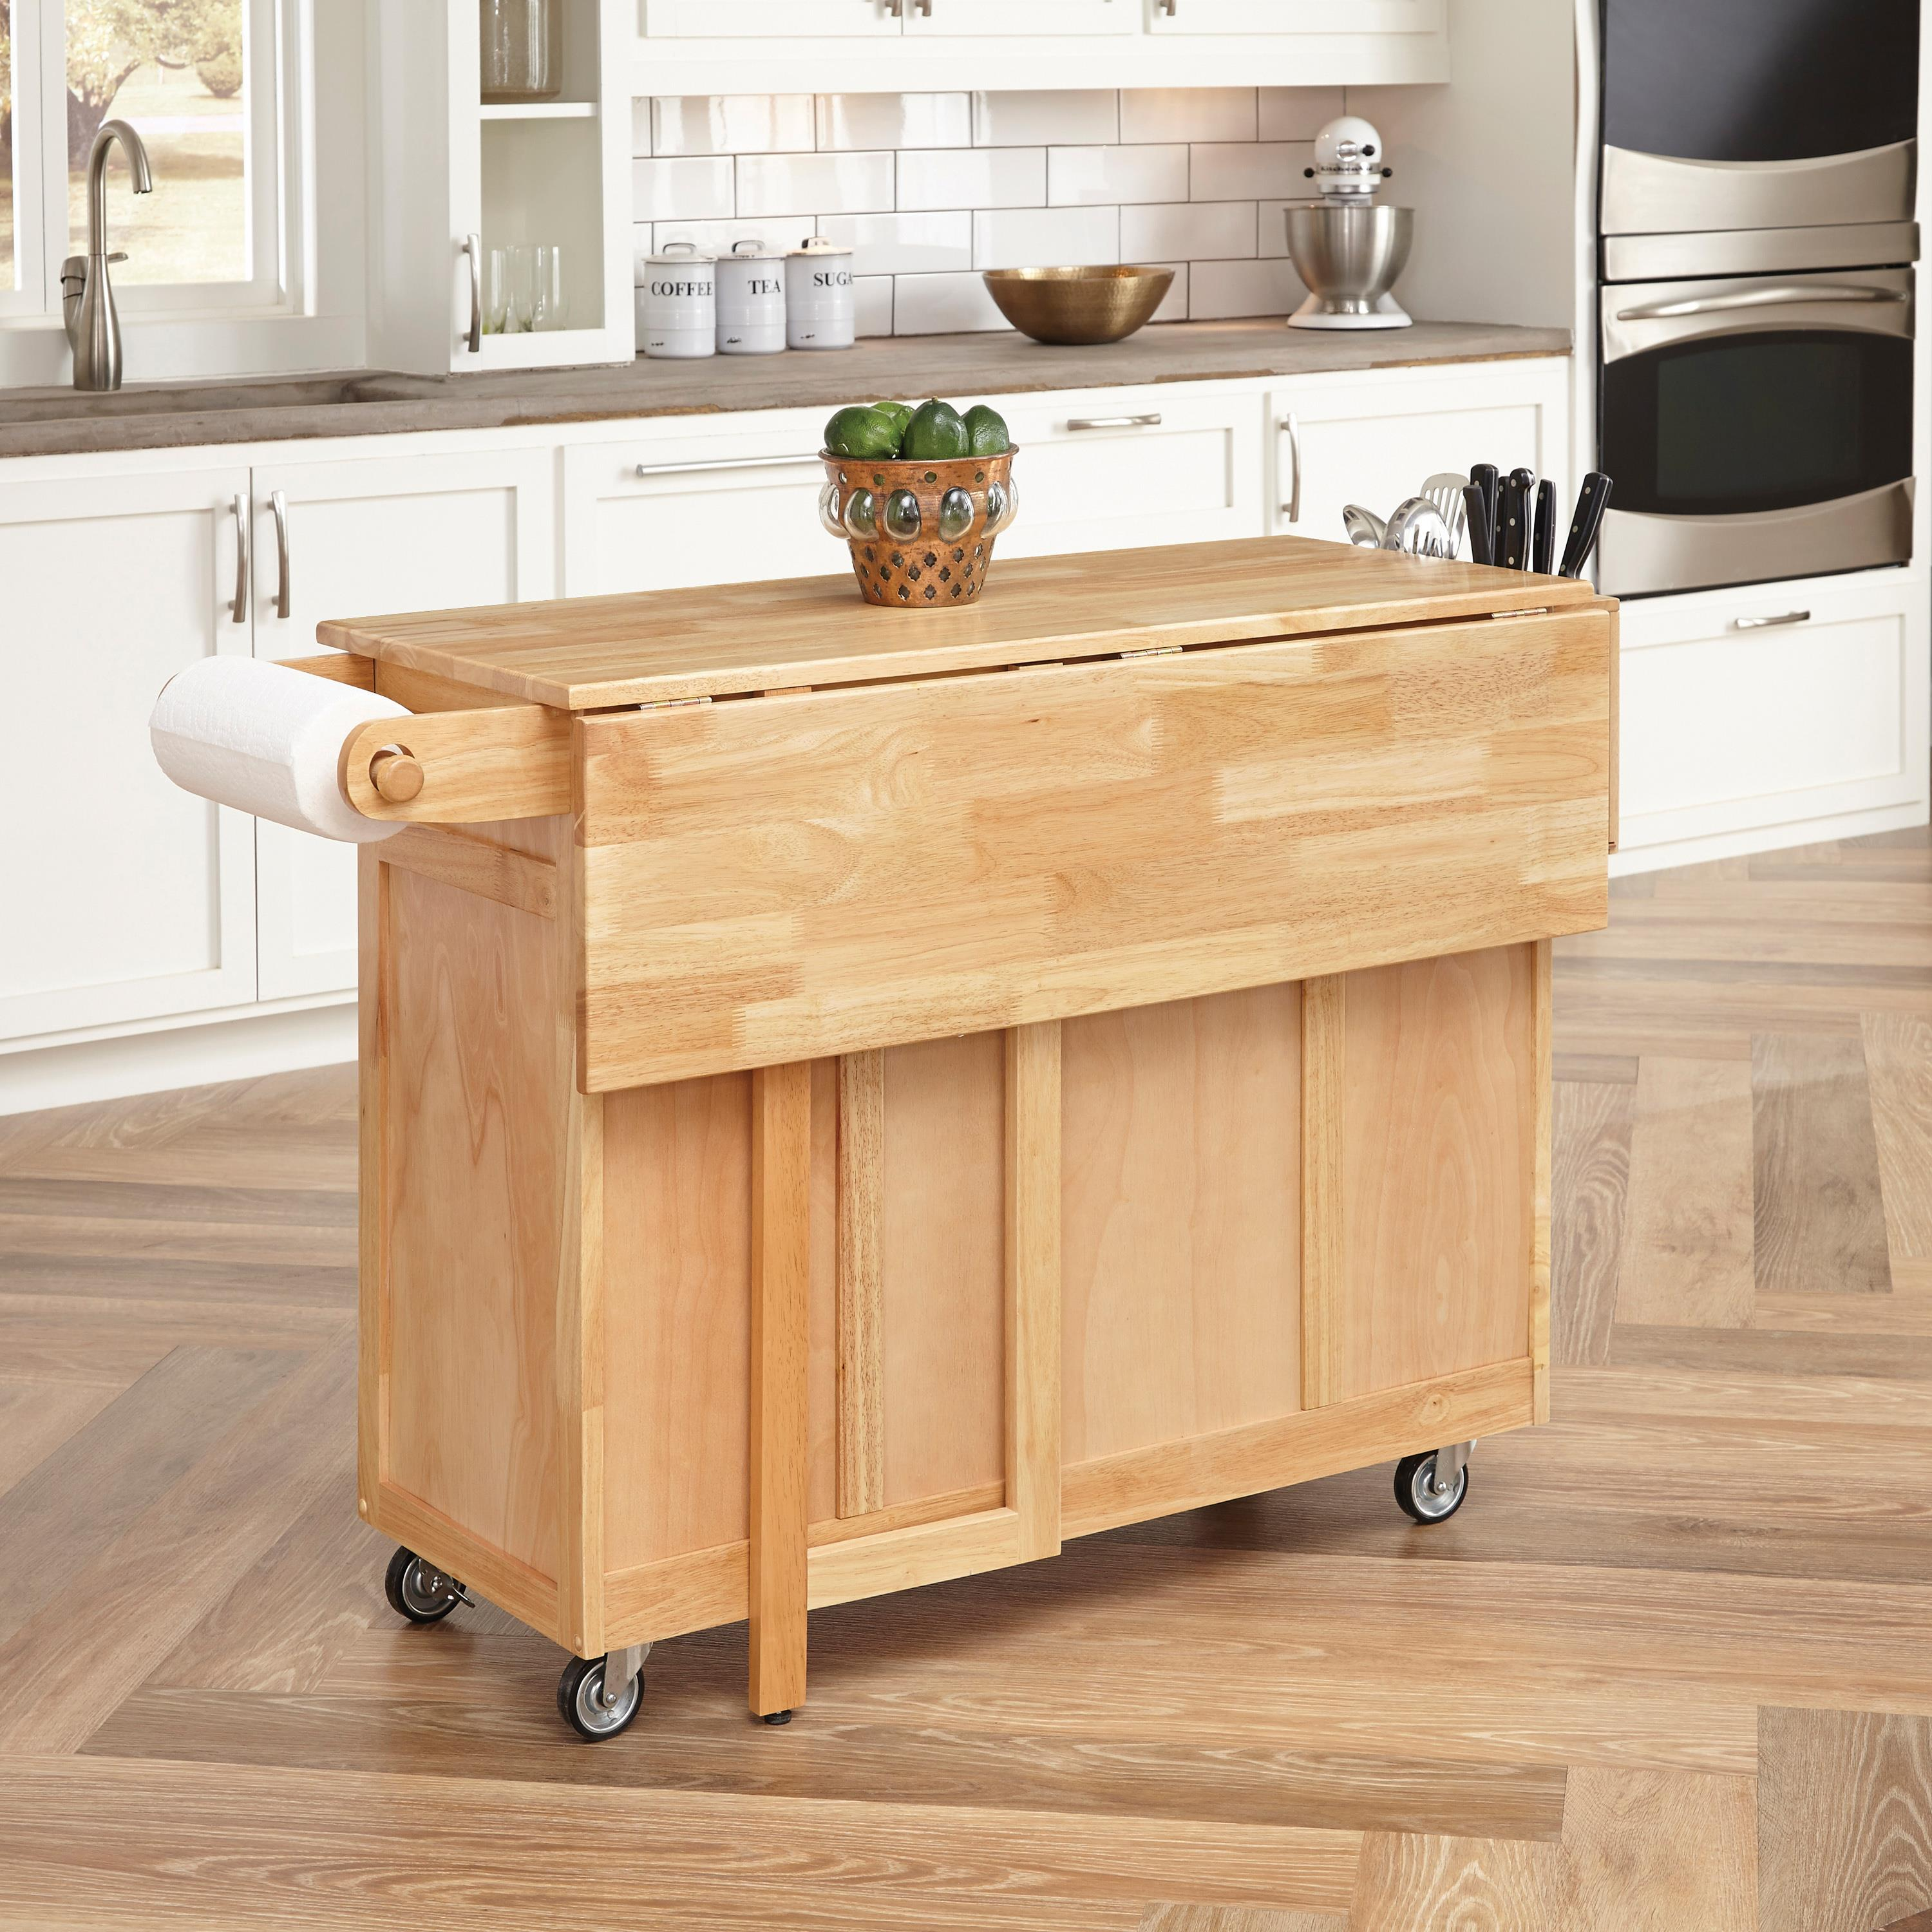 Kitchen Wood Top: Home Styles Wood Top Kitchen Cart With Breakfast Bar By OJ